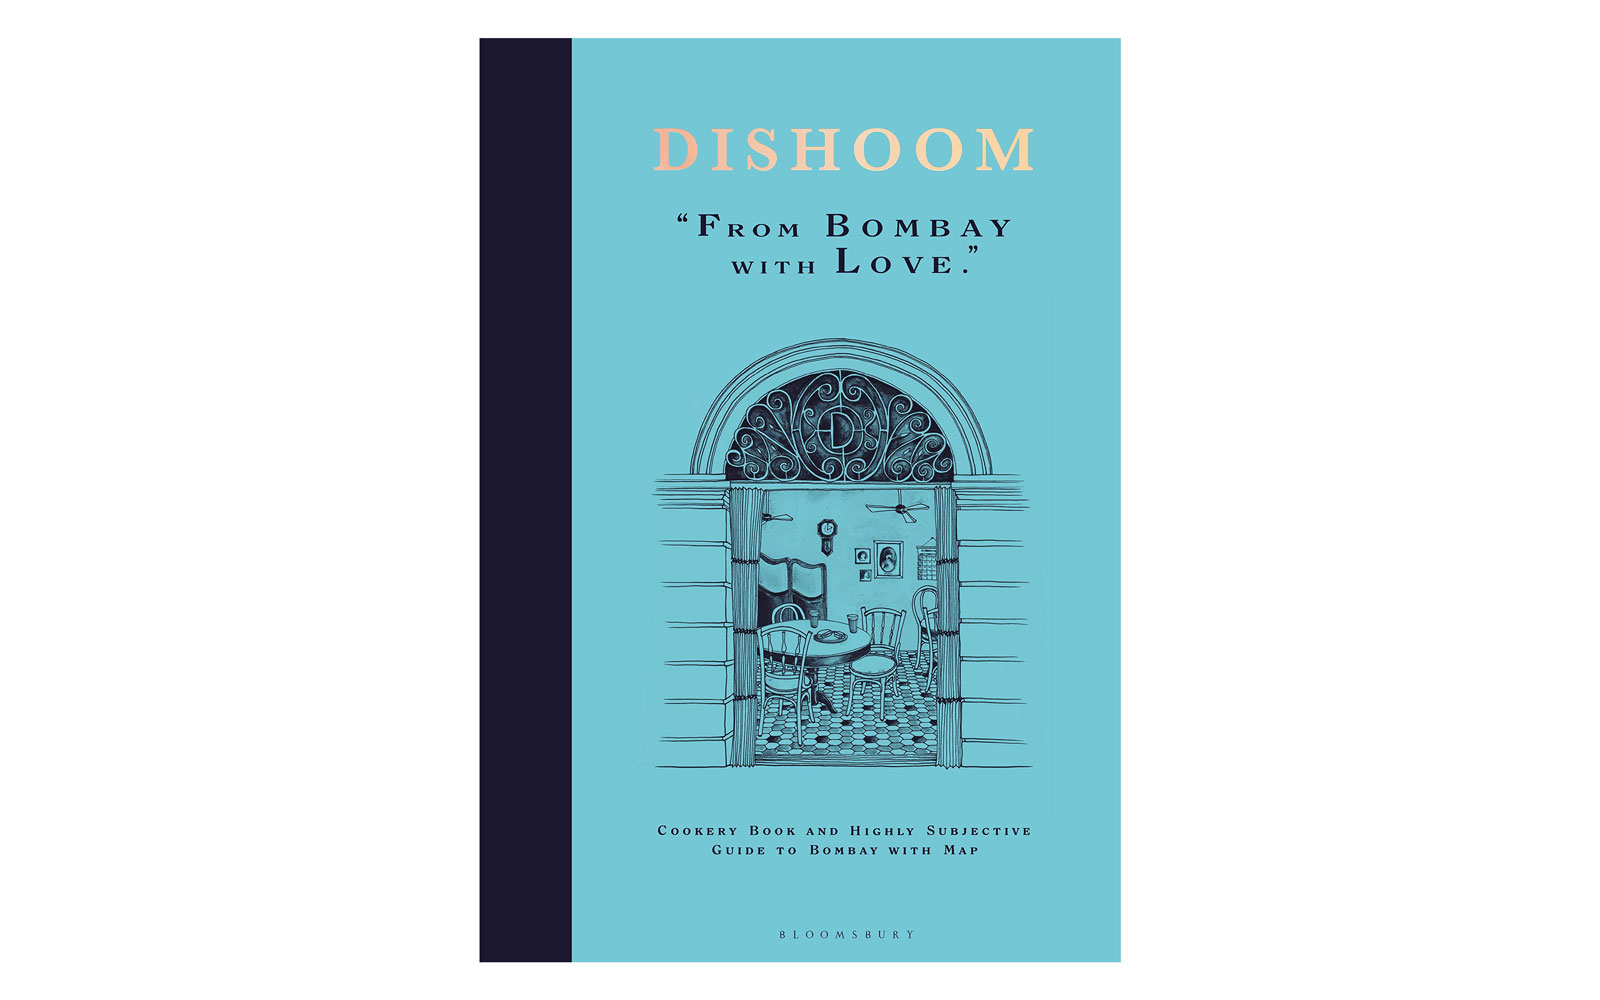 Dishoom Cookbook